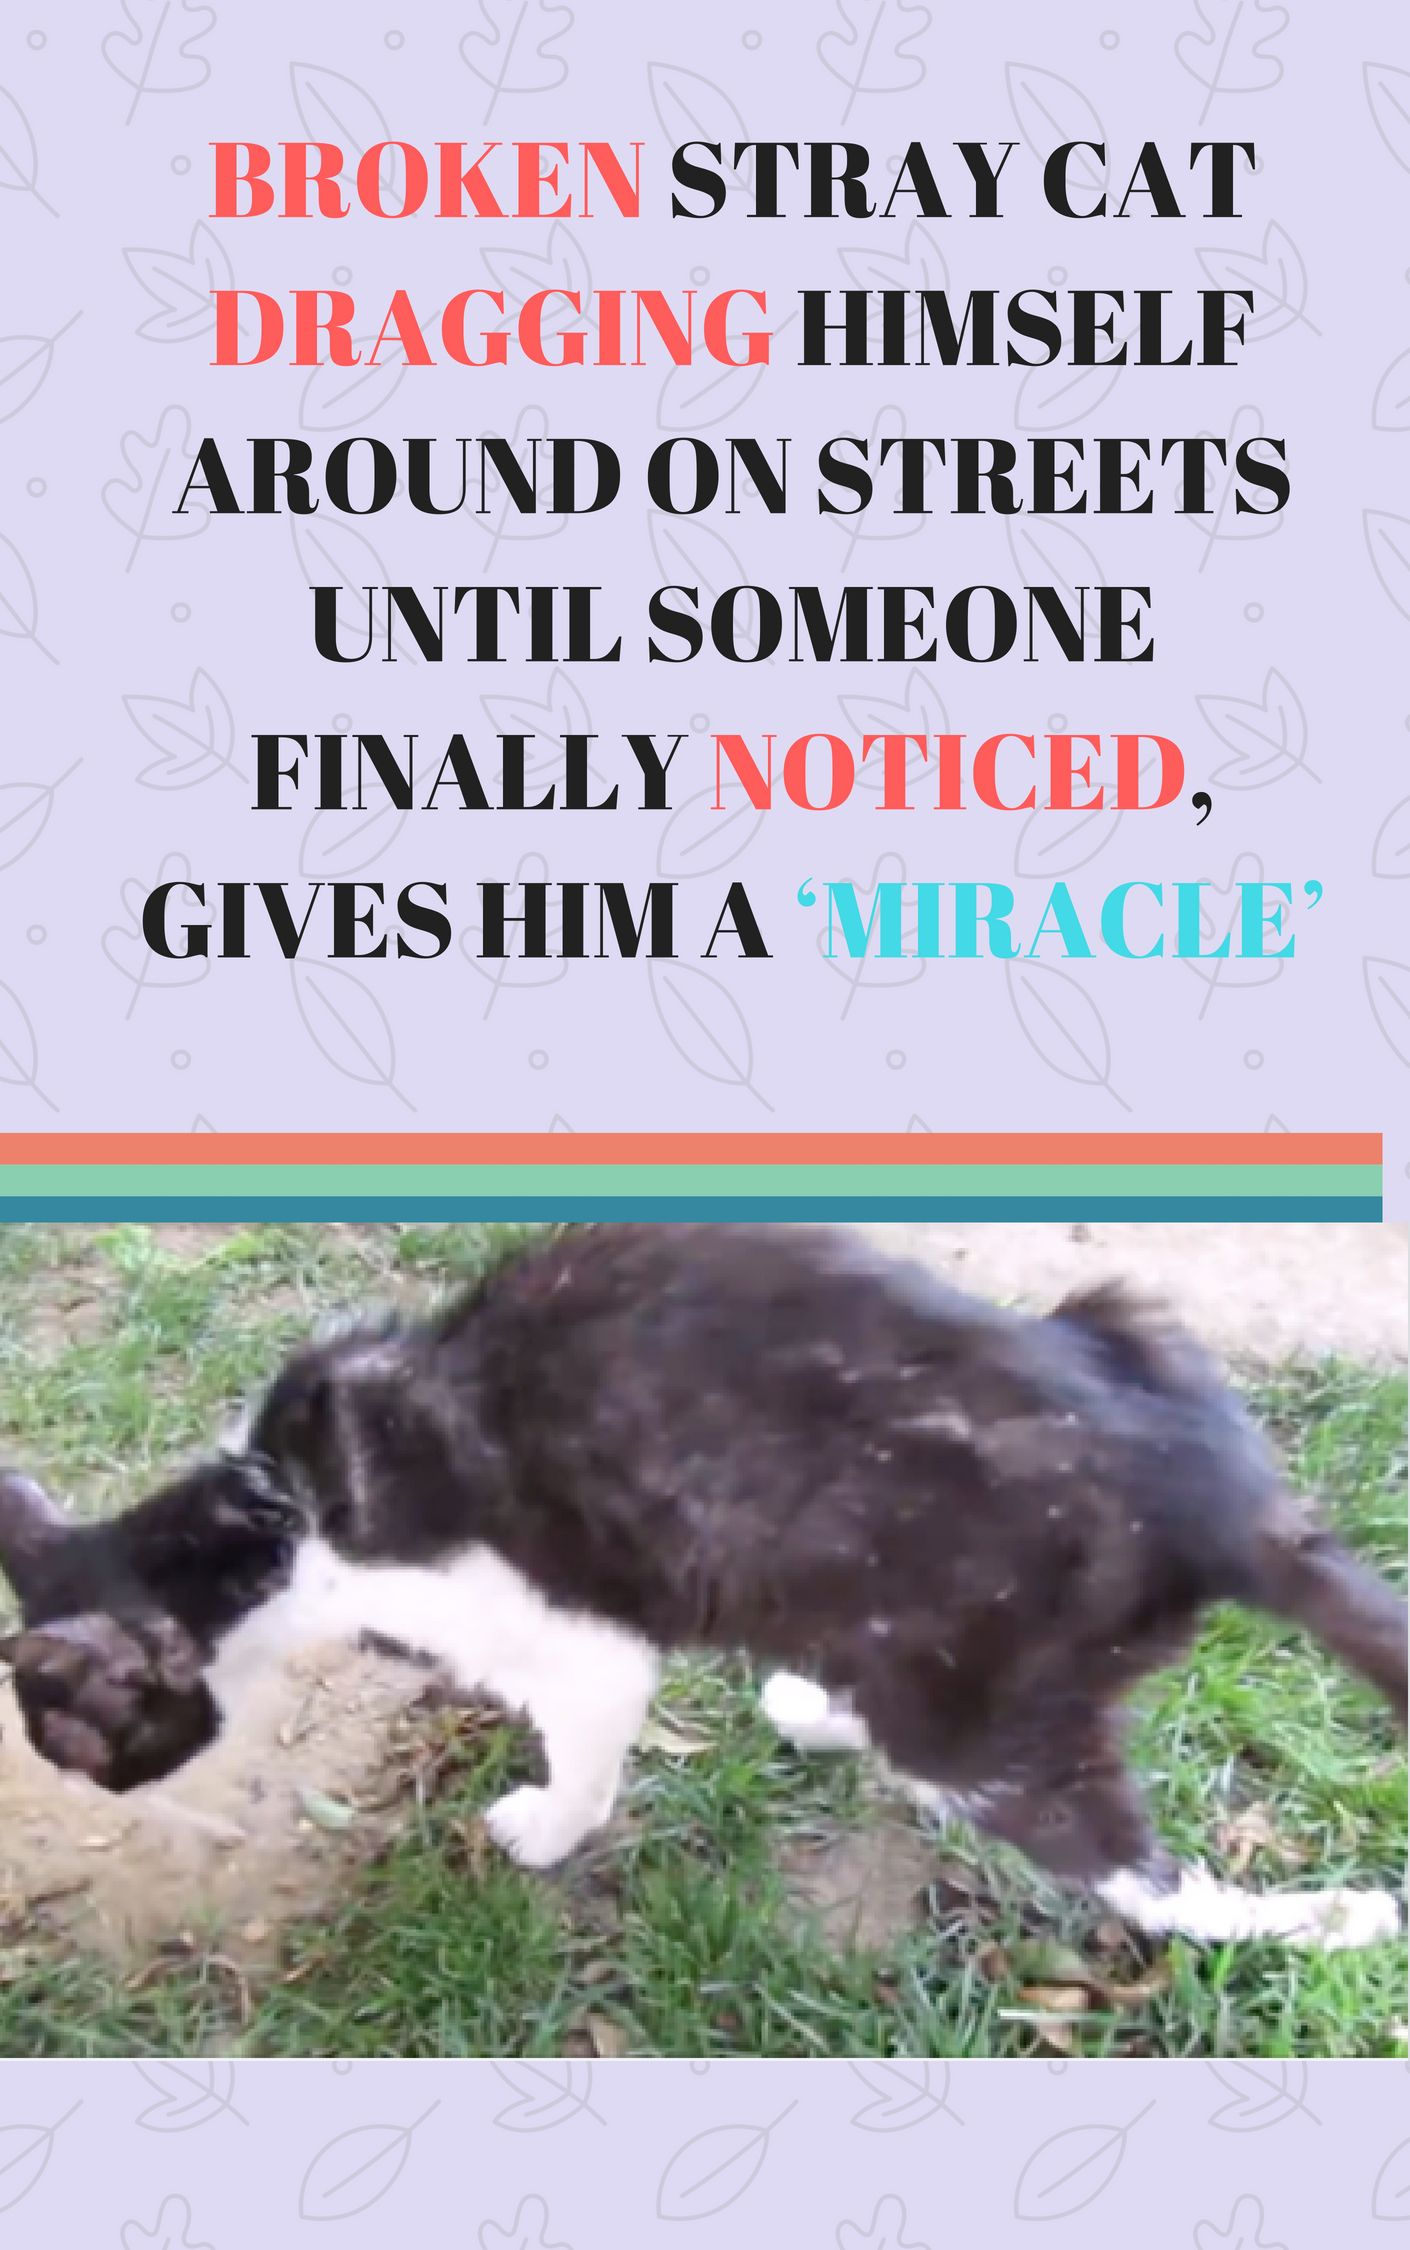 Broken Stray Cat Dragging Himself Around On Streets Until Someone Finally Noticed Gives Him A Miracle Stray Cat Cats And Kittens Animal Rescue Stories